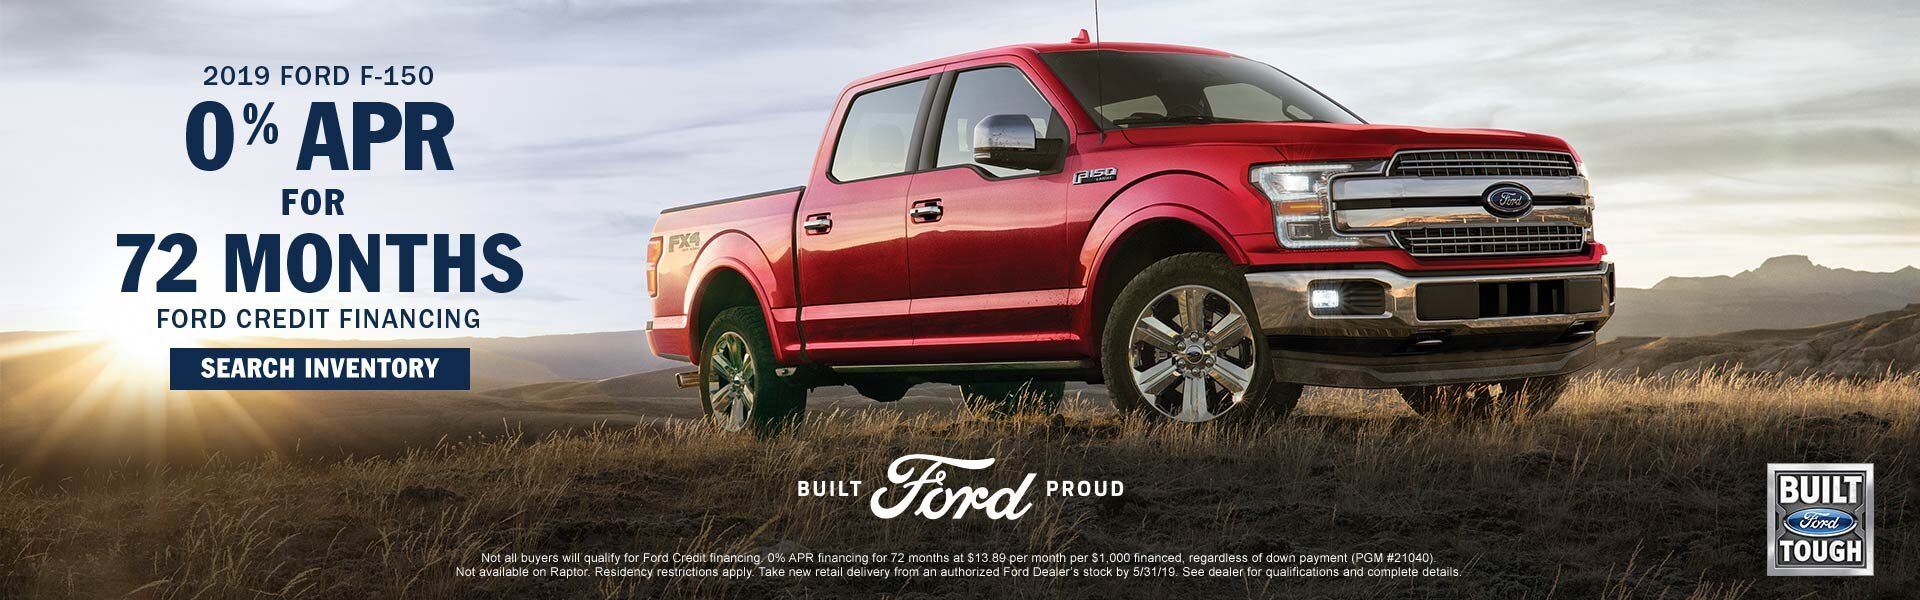 Ford 2019 F150 Financing Event at Chris Auffenberg Ford Lincoln